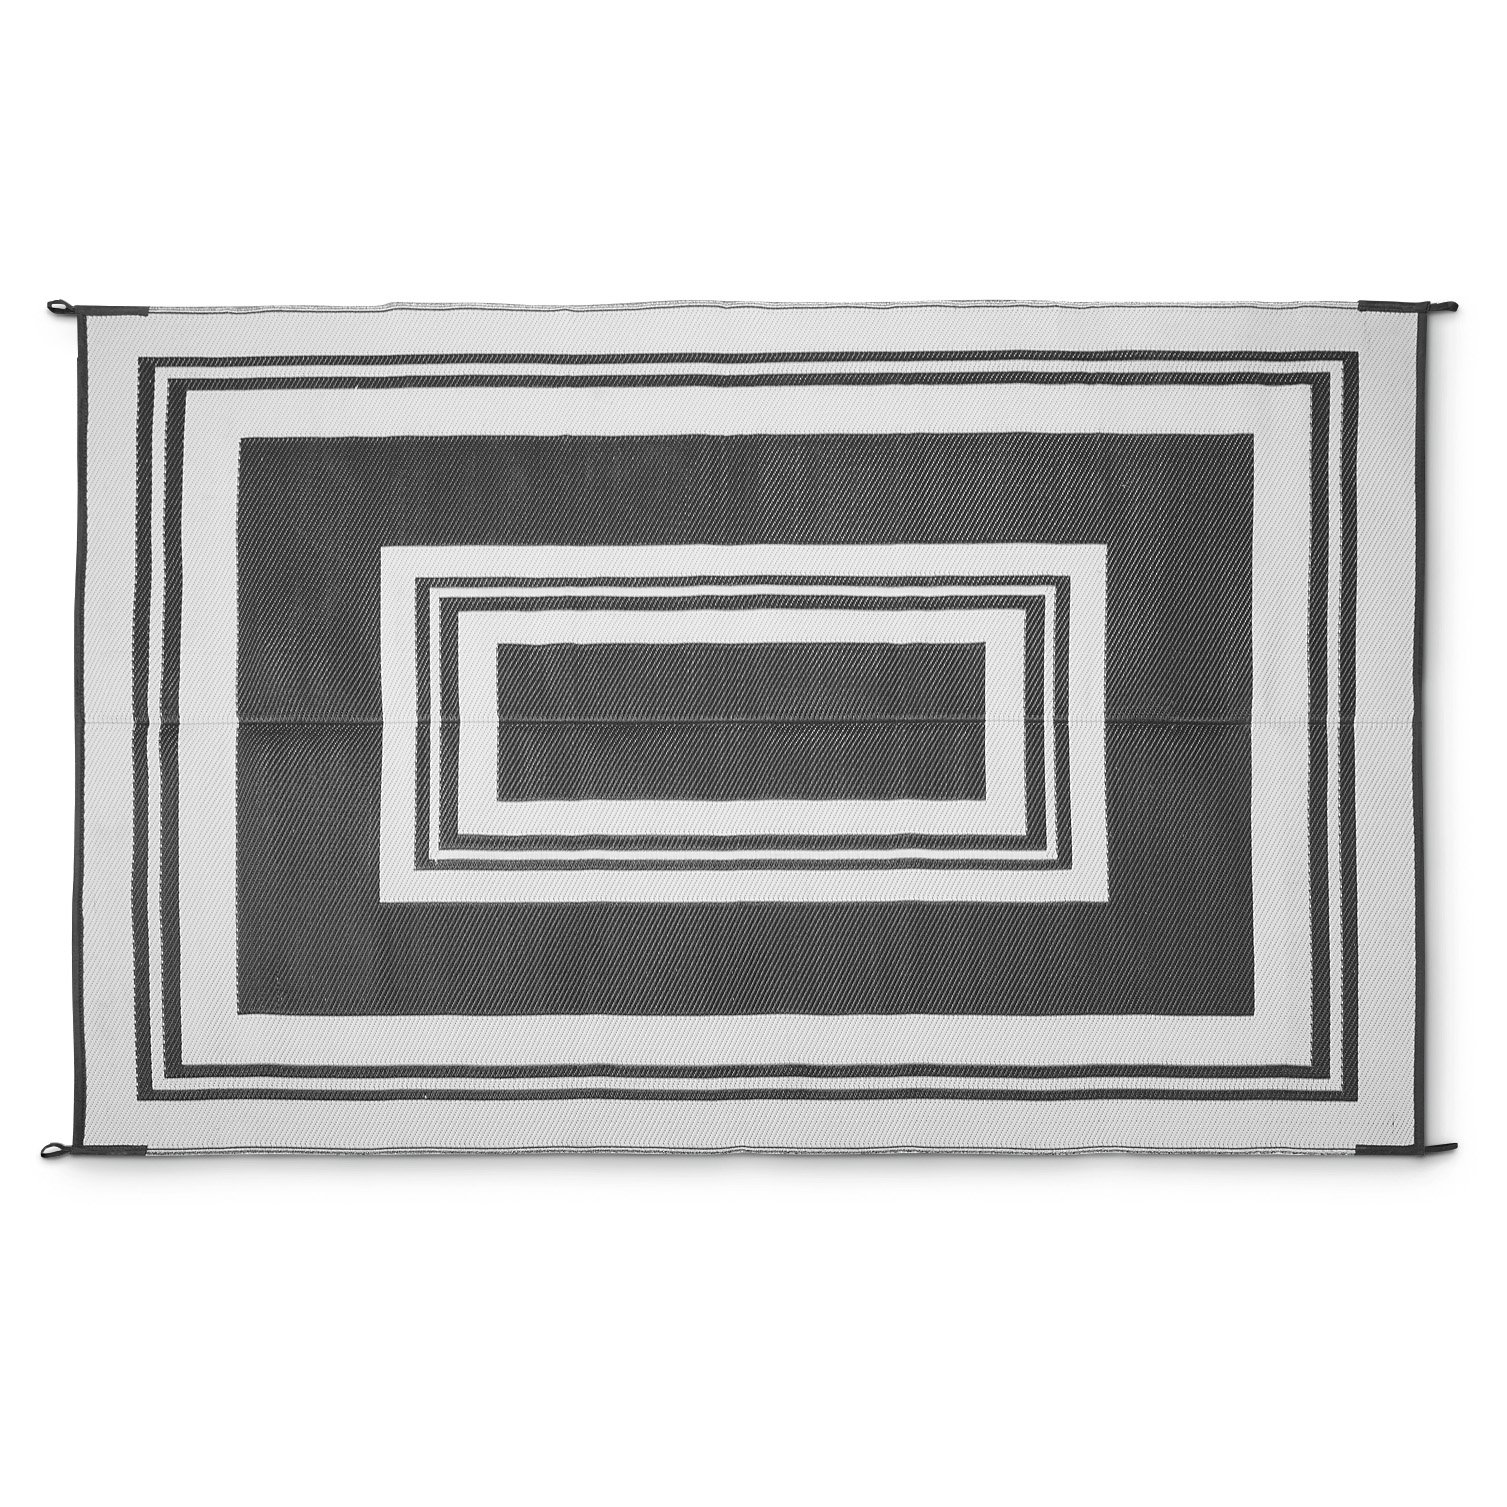 Guide Gear Reversible 9' x 12' Outdoor Rug, Border Pattern